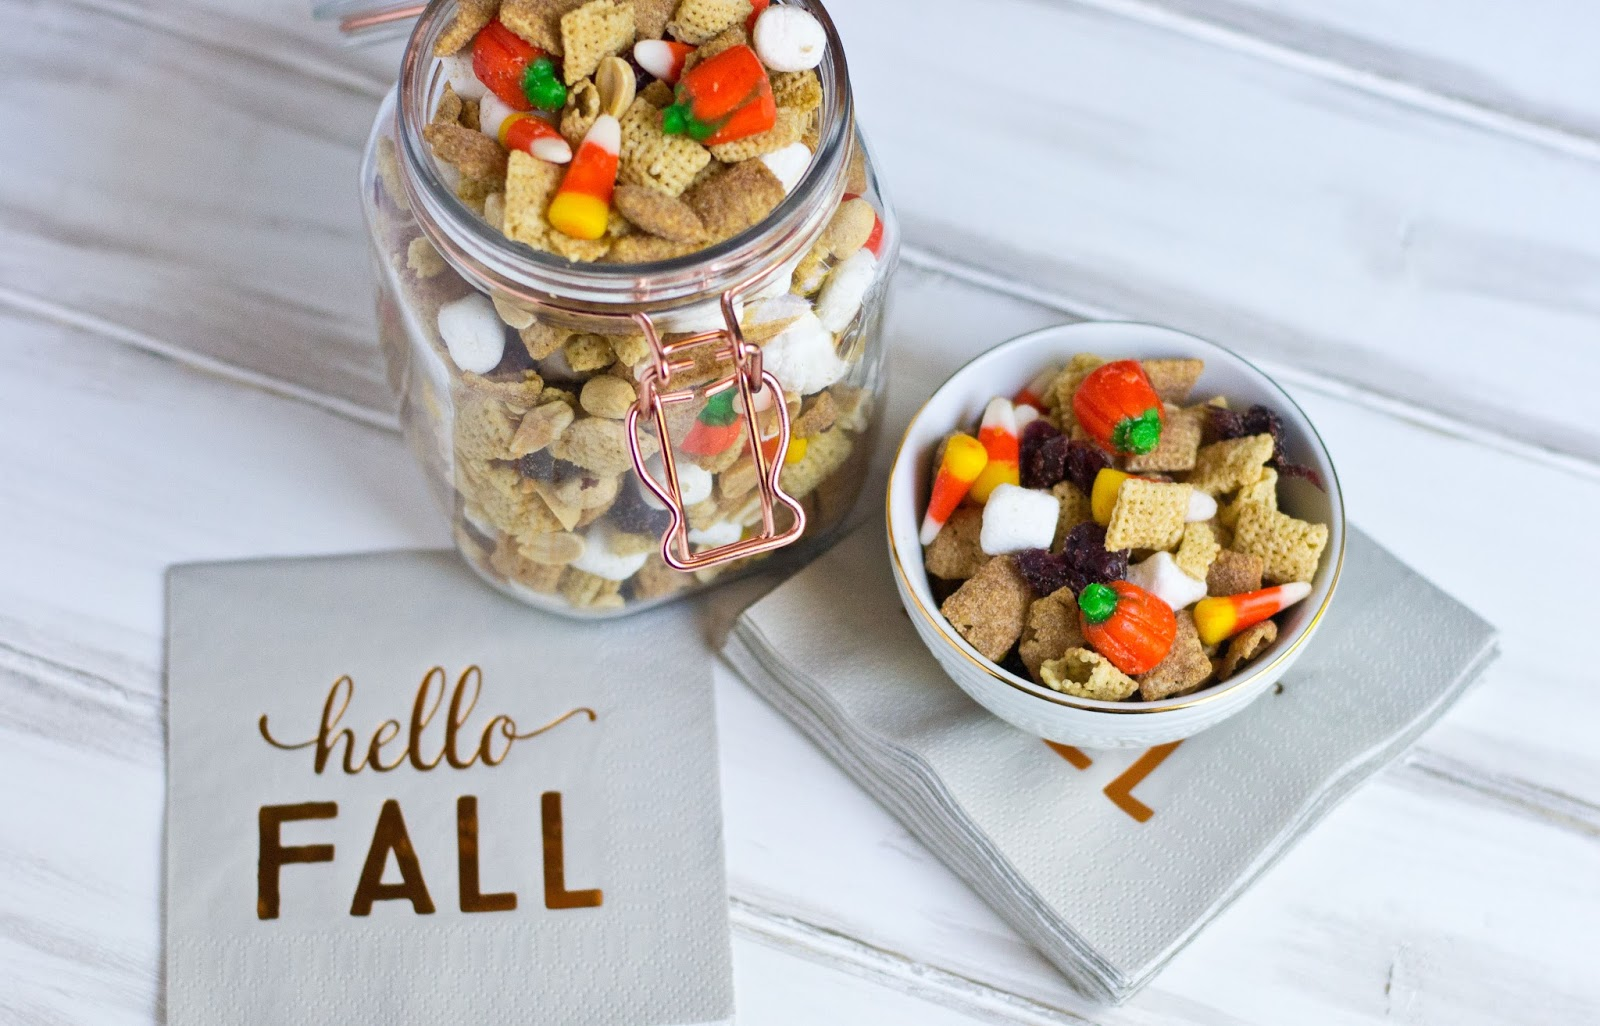 #dairyfree #glutenfree #allergyfriendly #trailmix #fall #halloween